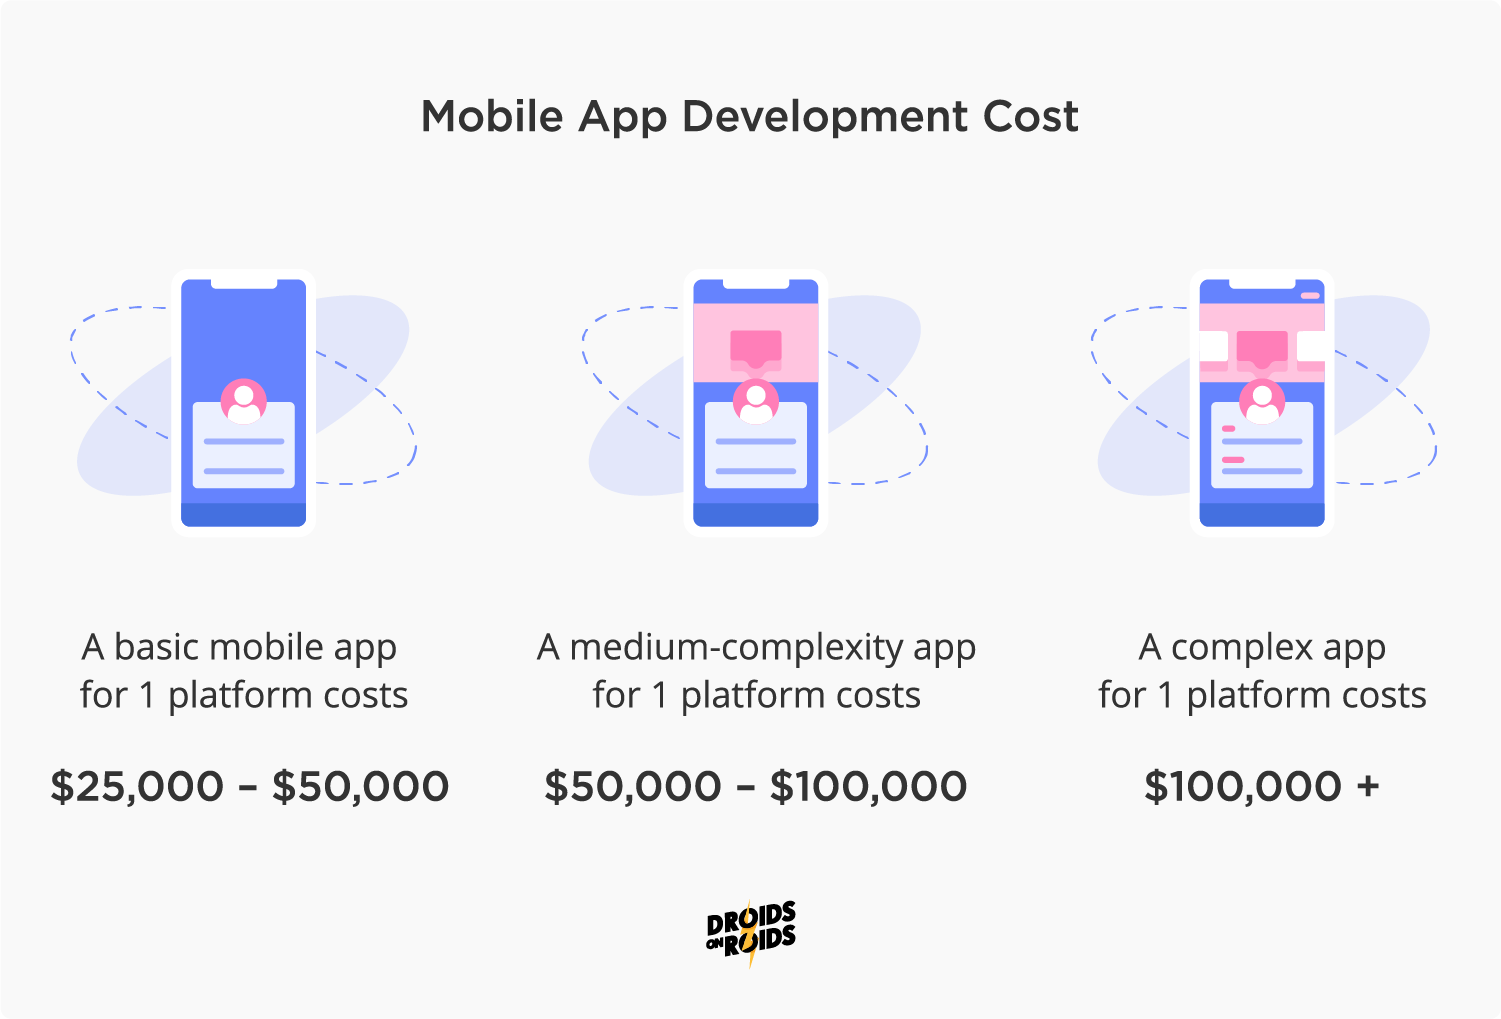 mobile app development cost in 2020 - how much does it cost to develop an app?